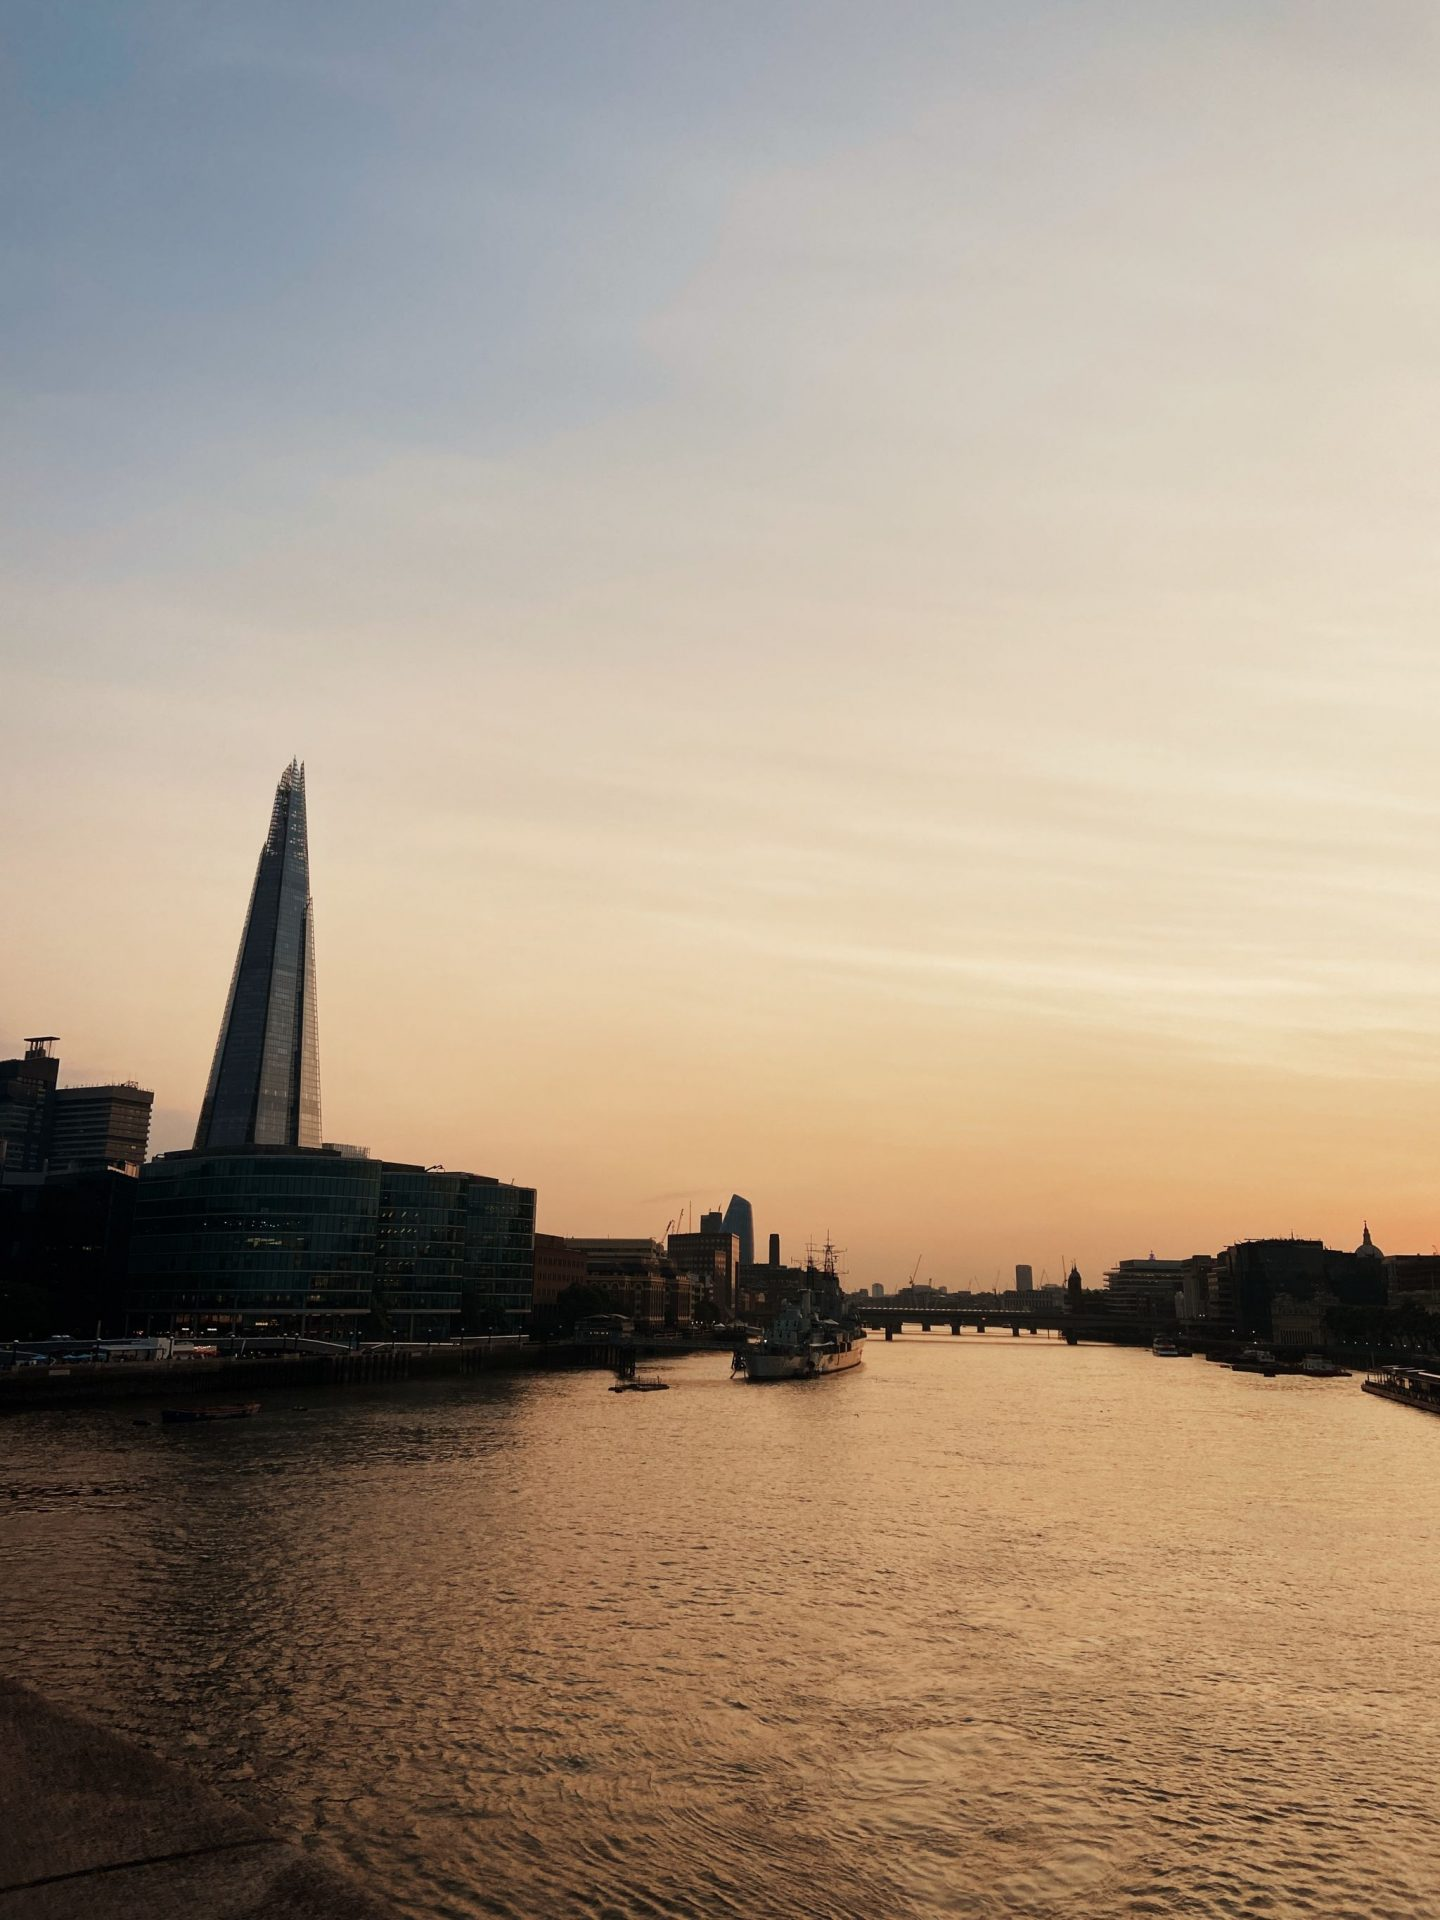 A little London staycation diary of what we got up to on our mini holiday and what you could do if you are in London for a week...